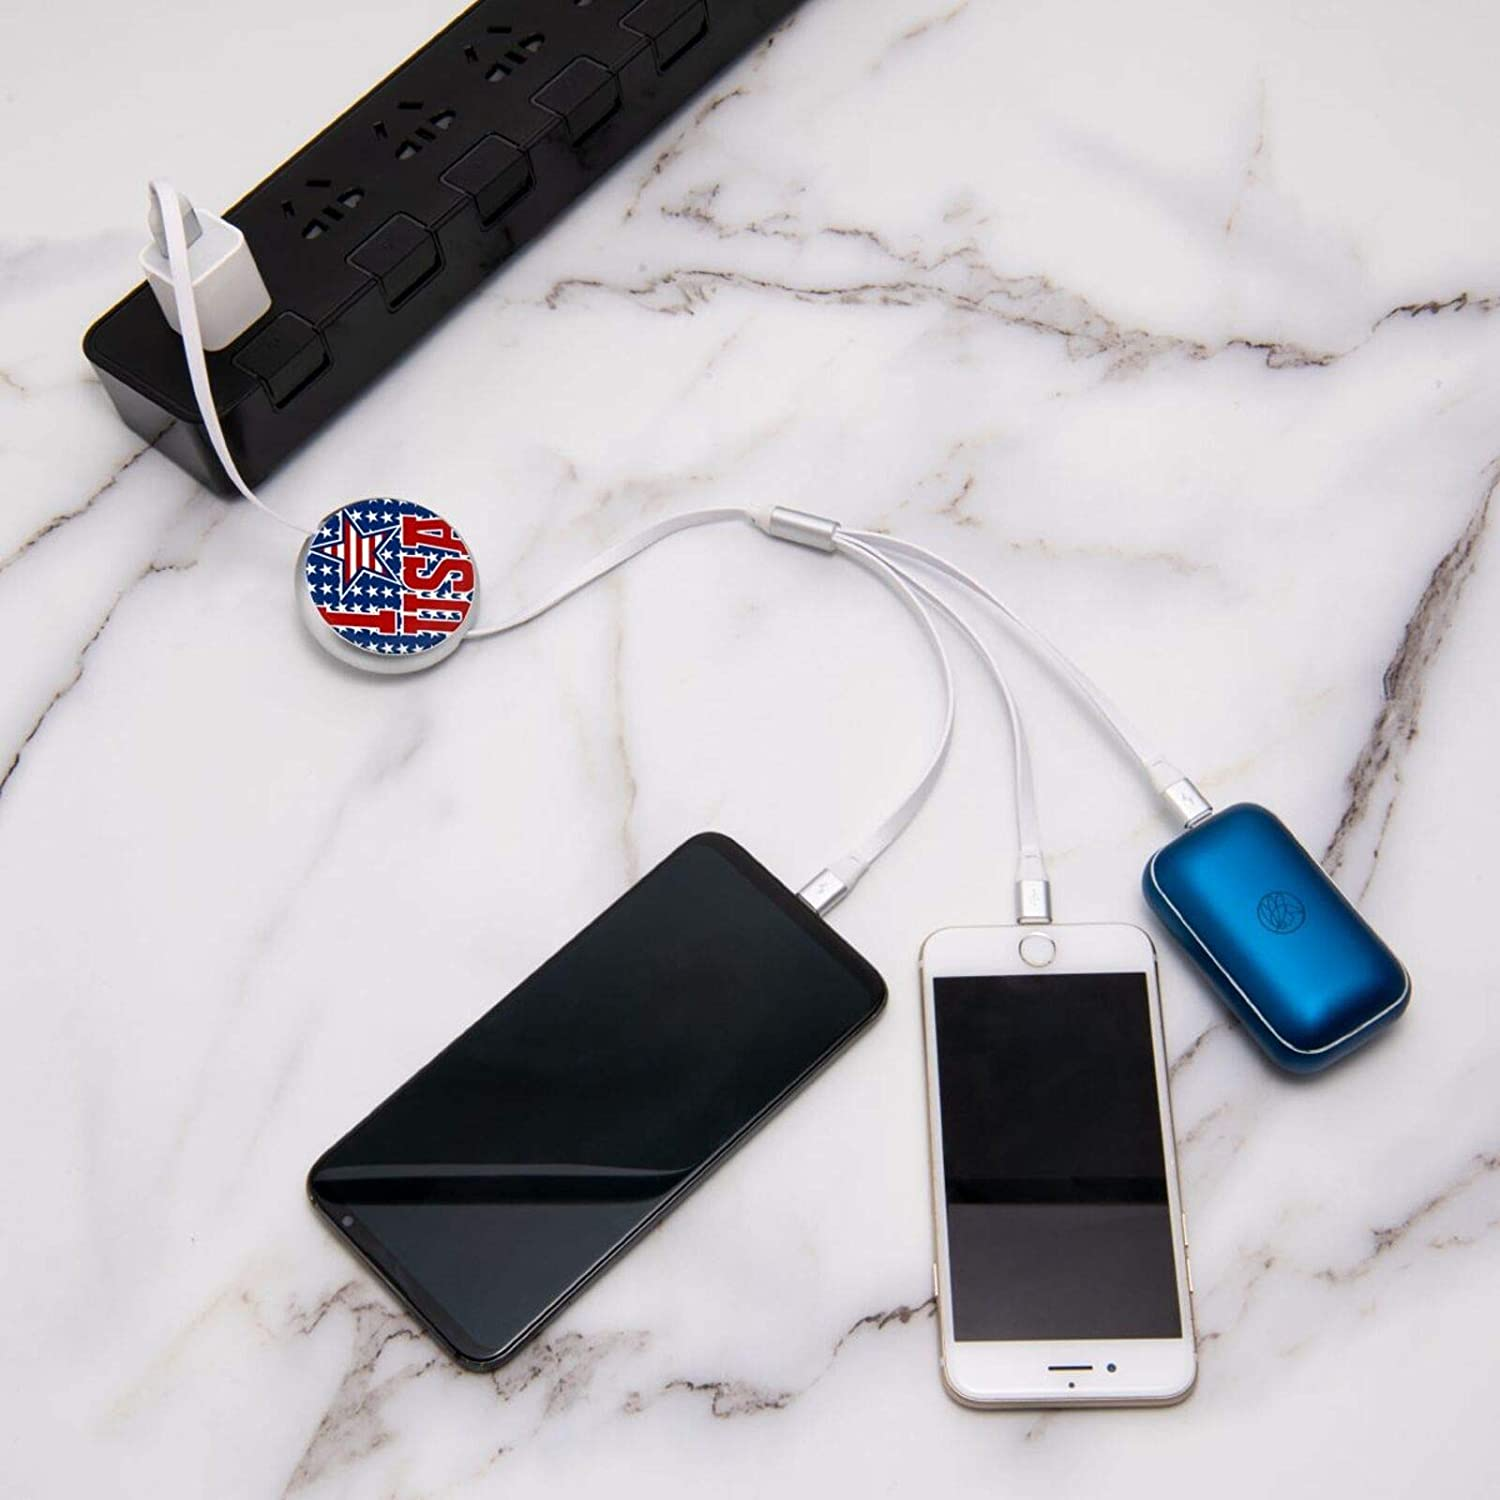 3-in-1 Retractable USB Charger Cable Cord Happy Independence Day 4th of July Fast Charging Customized USB Charge Cord Compatible with Cell Phones Tablets Universal Use